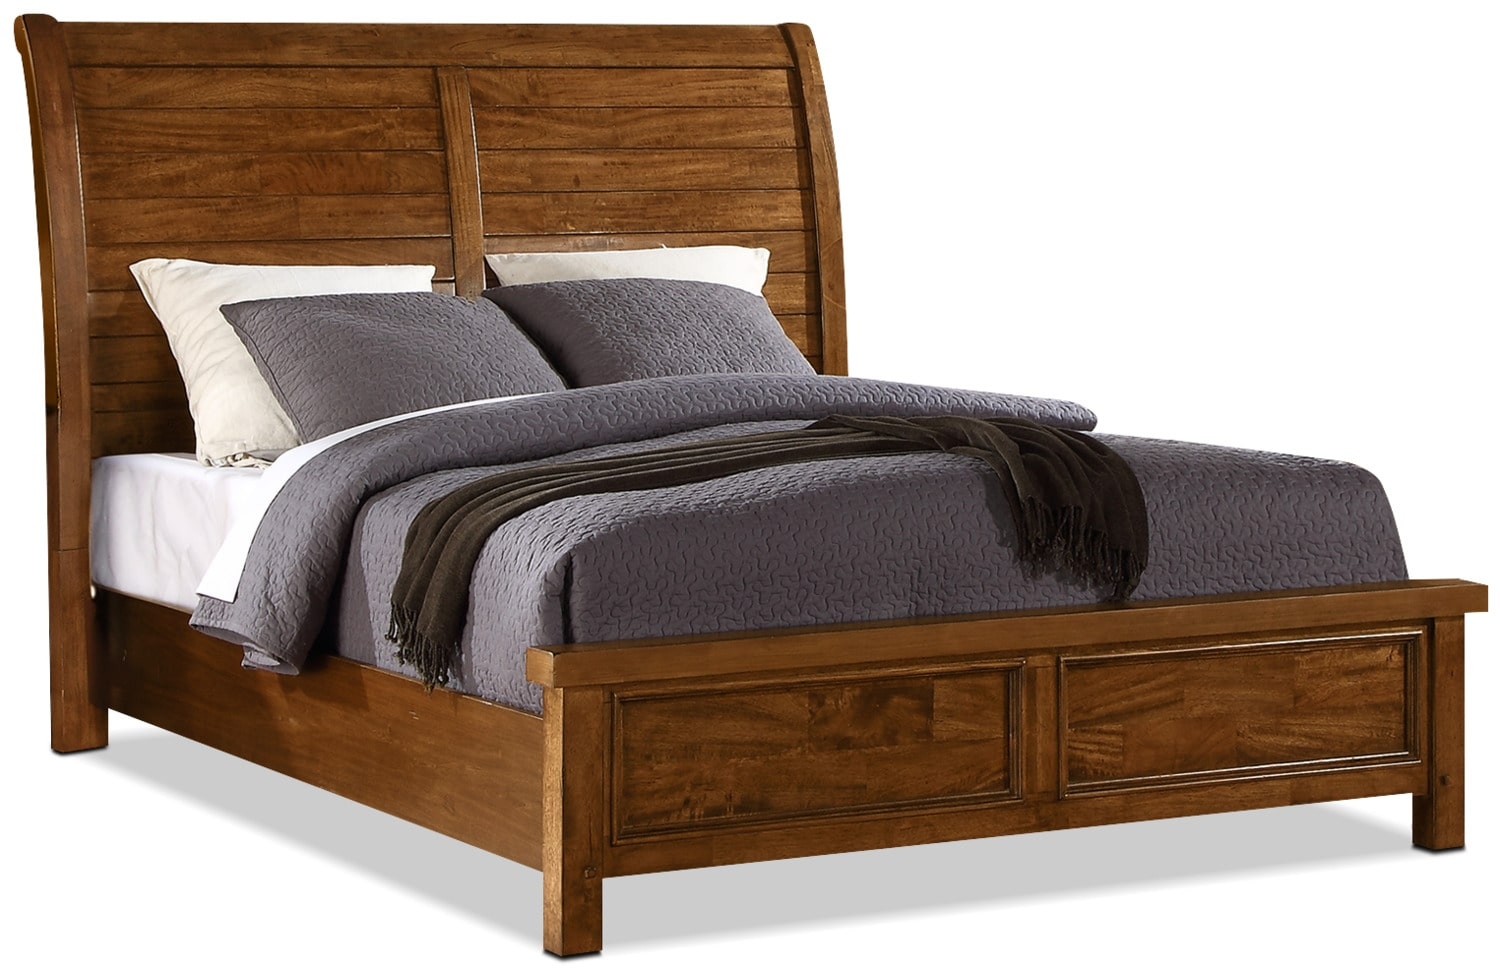 Bedroom Furniture - Sonoma King Sleigh Bed – Medium Brown